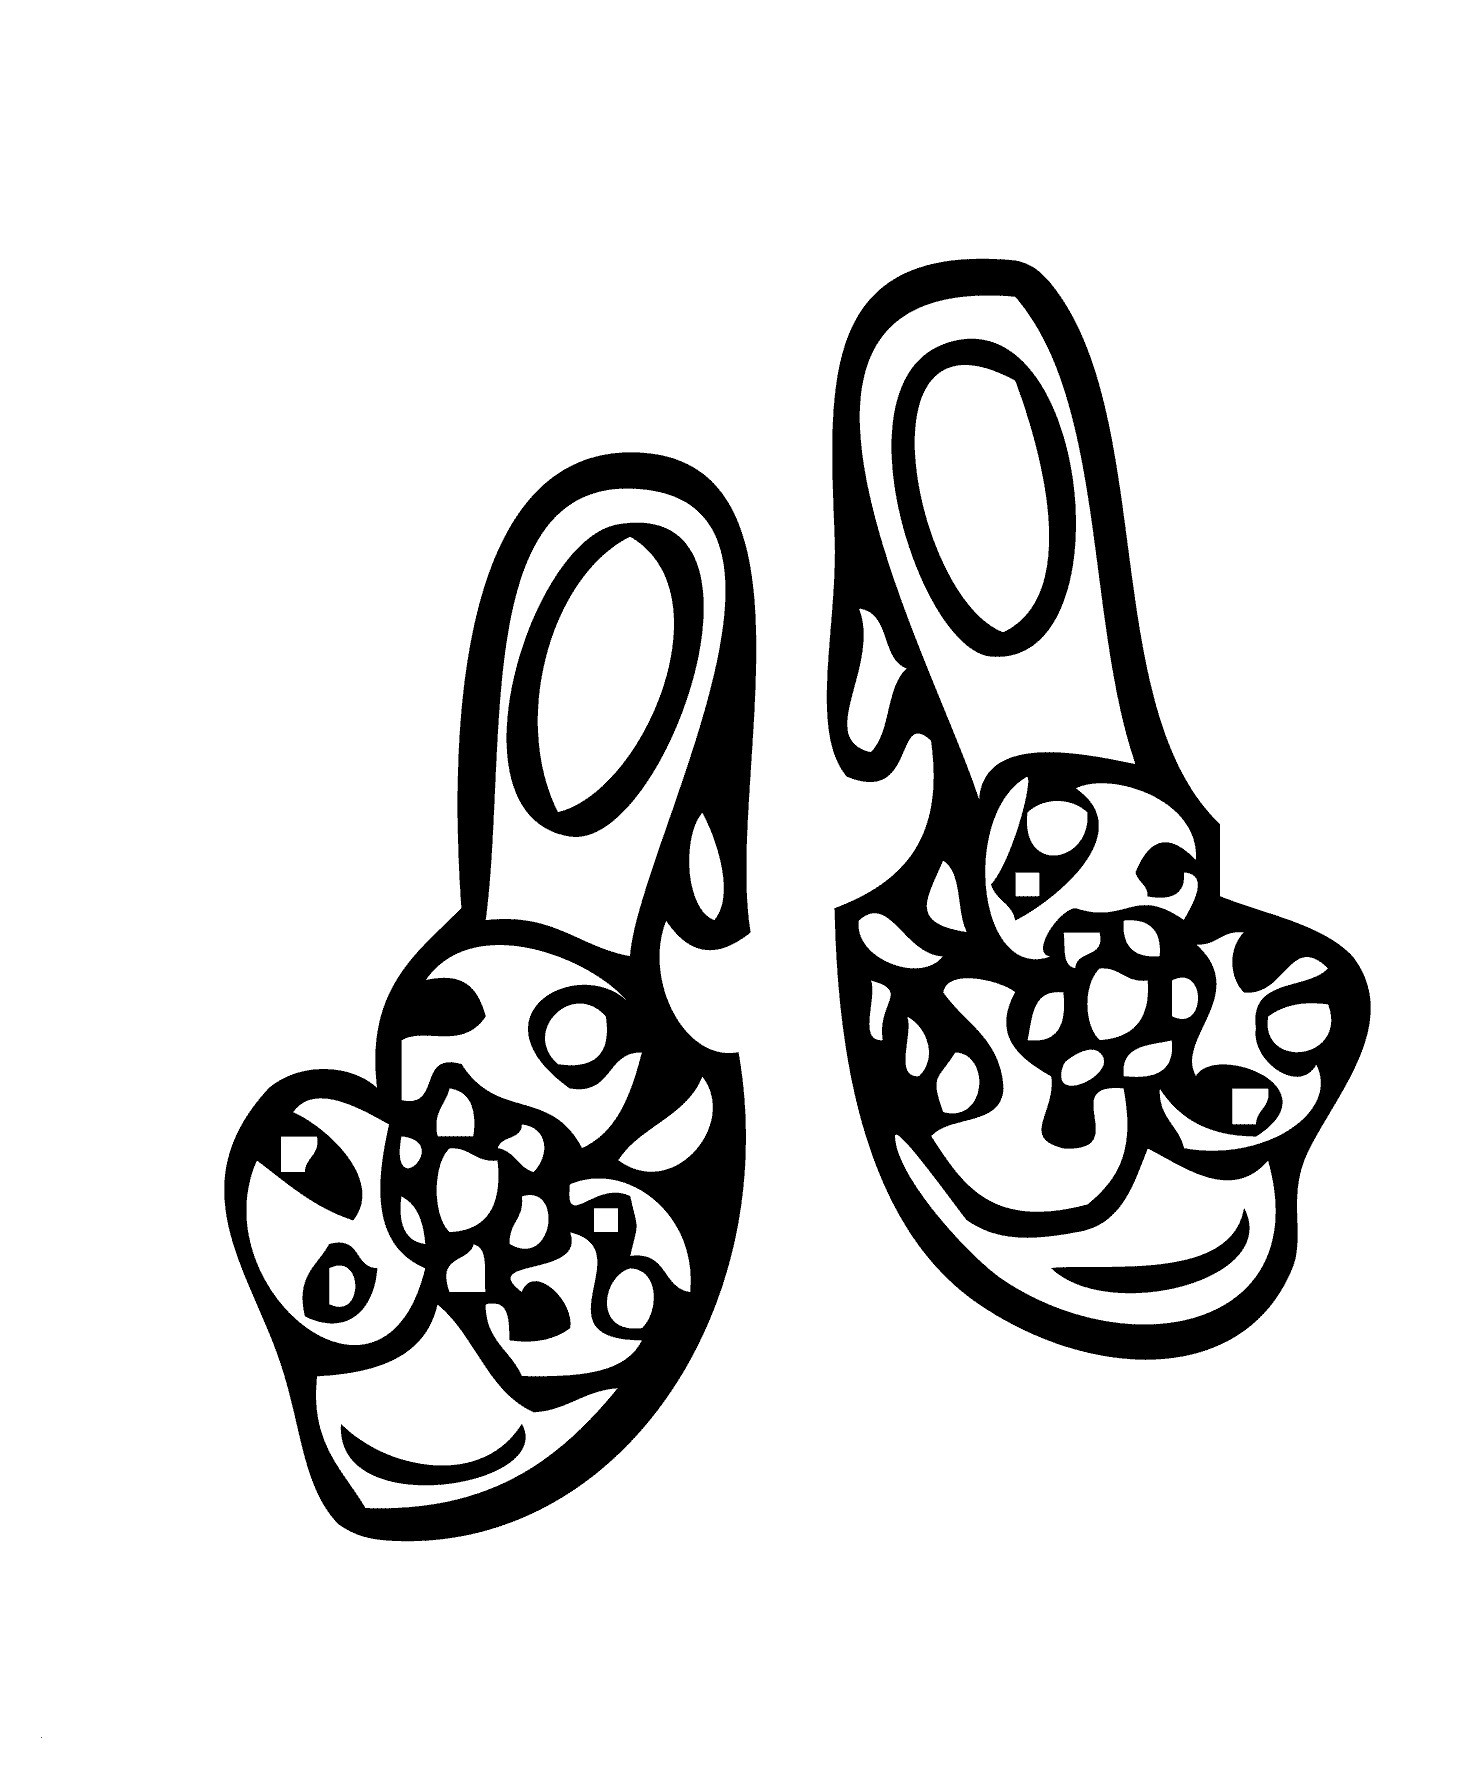 Essen Zum Ausmalen Inspirierend Girls Shoes Coloring Page Printable Free for Girls Inspirierend Fotografieren